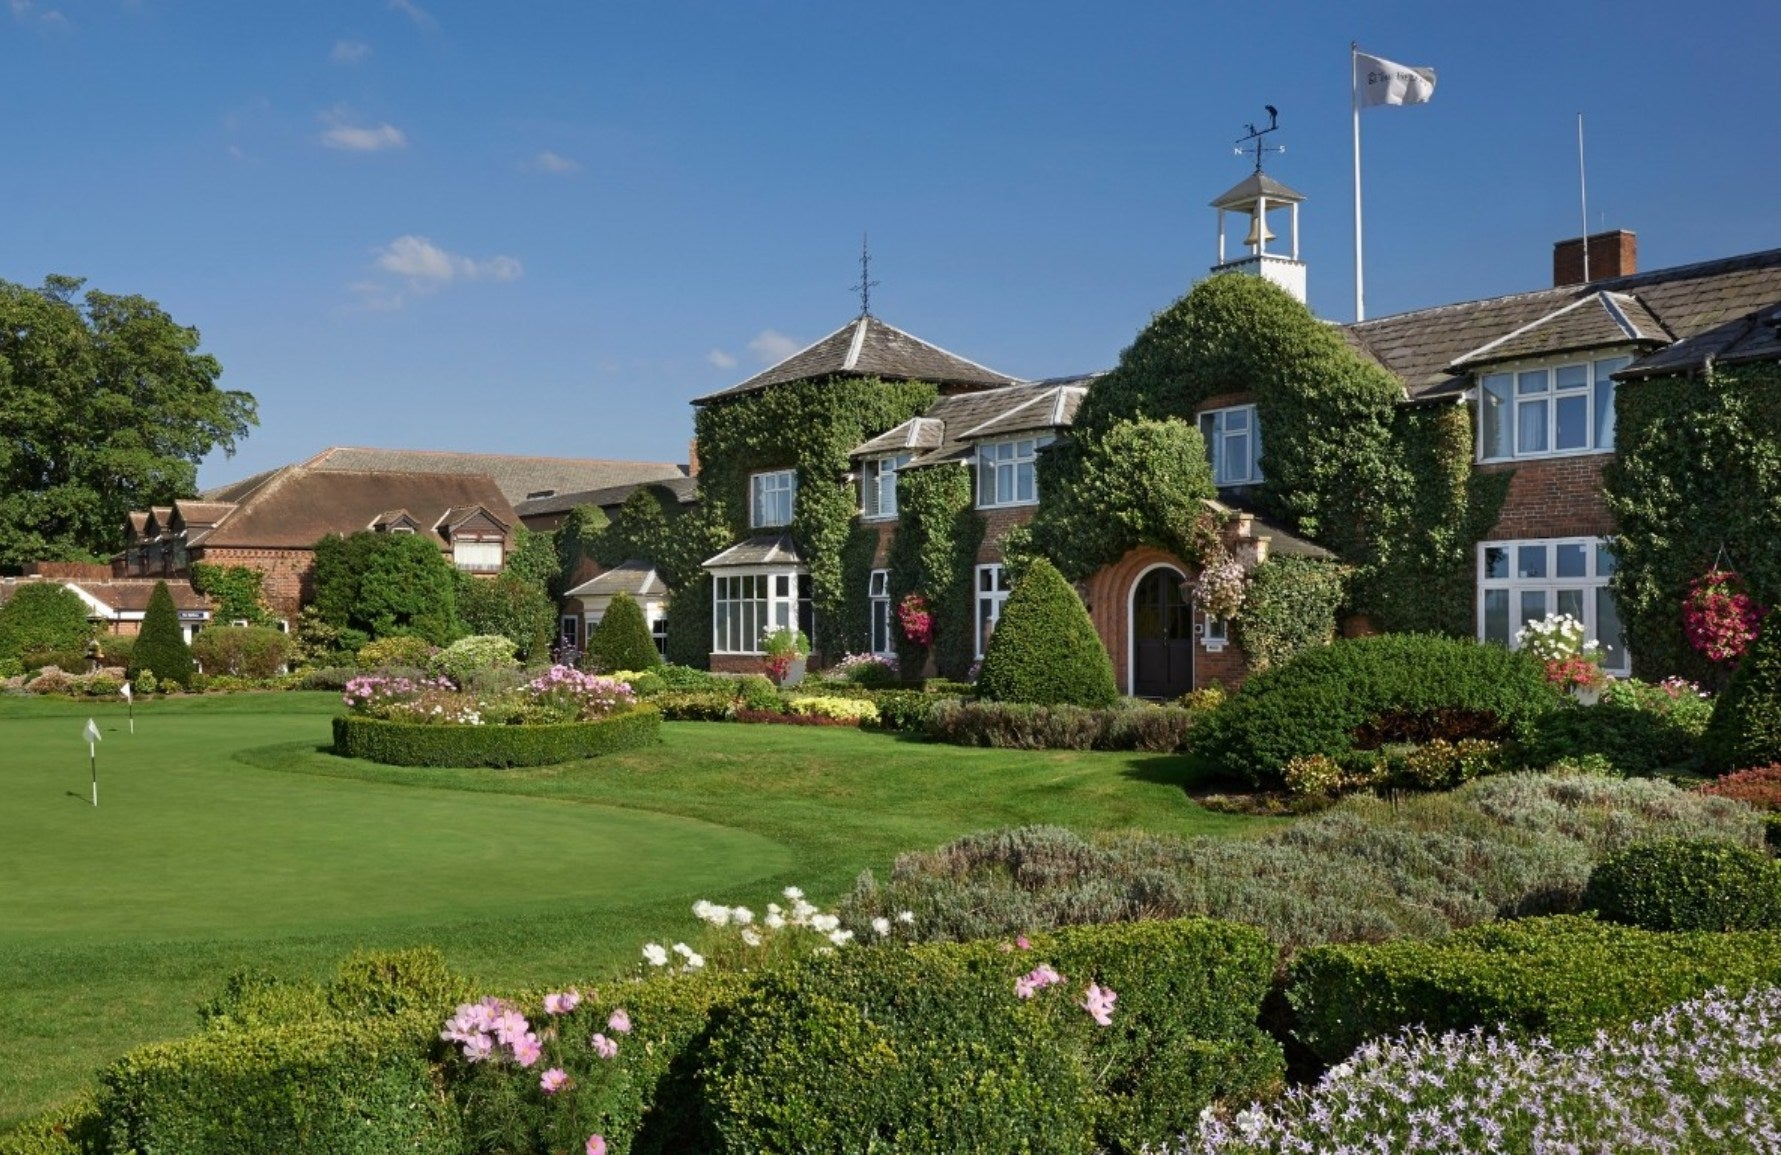 The Belfry Hotel & Resort | Read more about Britain's top spa hotels at LuxDeco.com